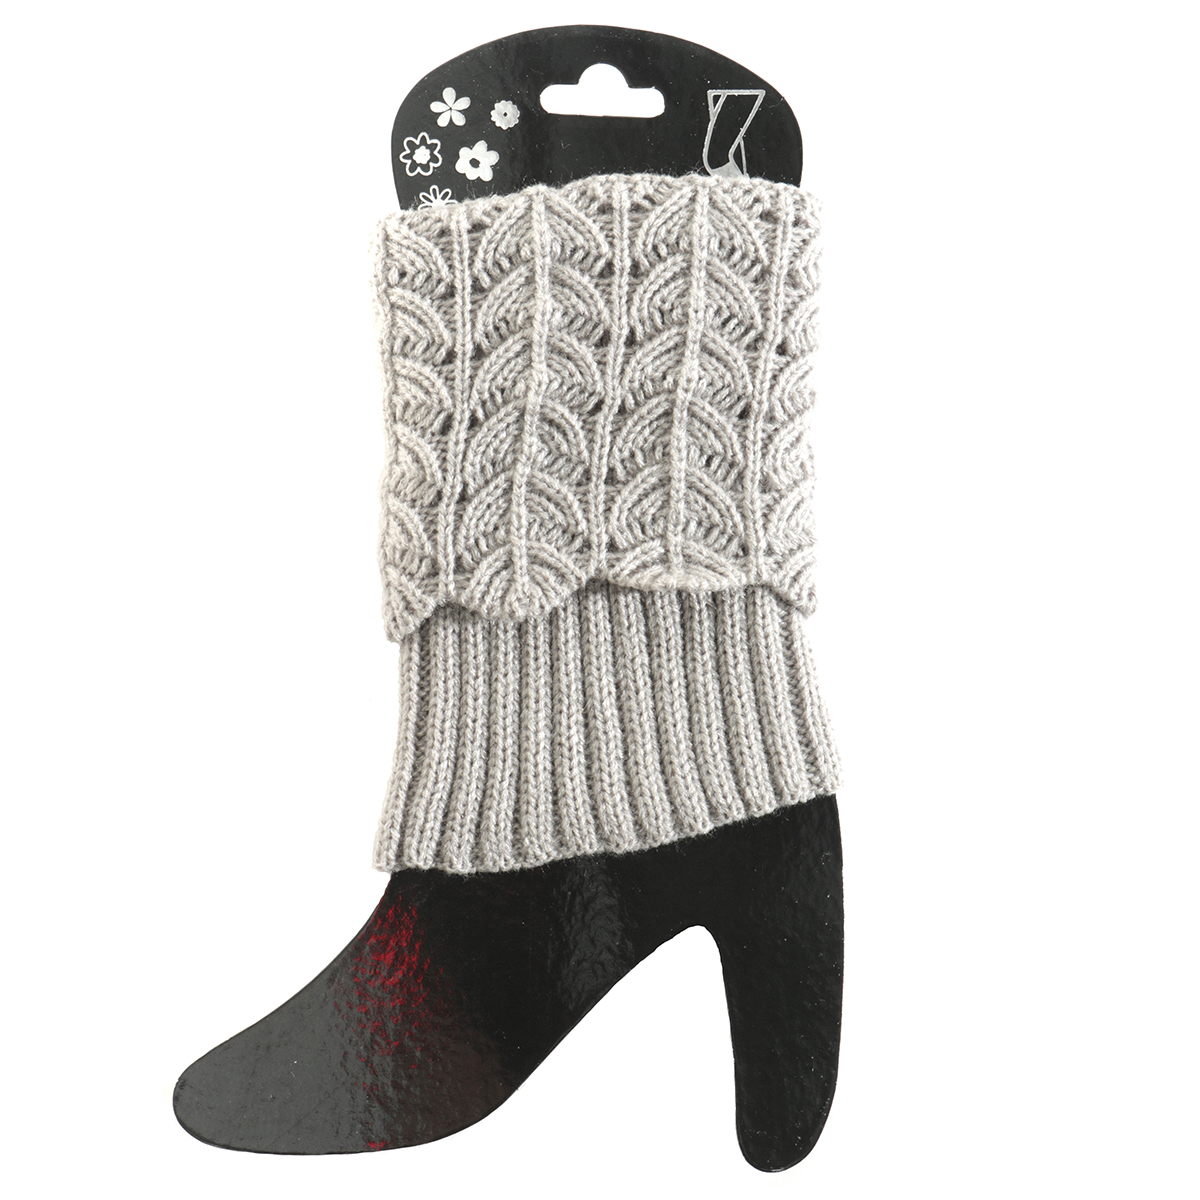 Grey Crochet Boot Cuff Short 50sp